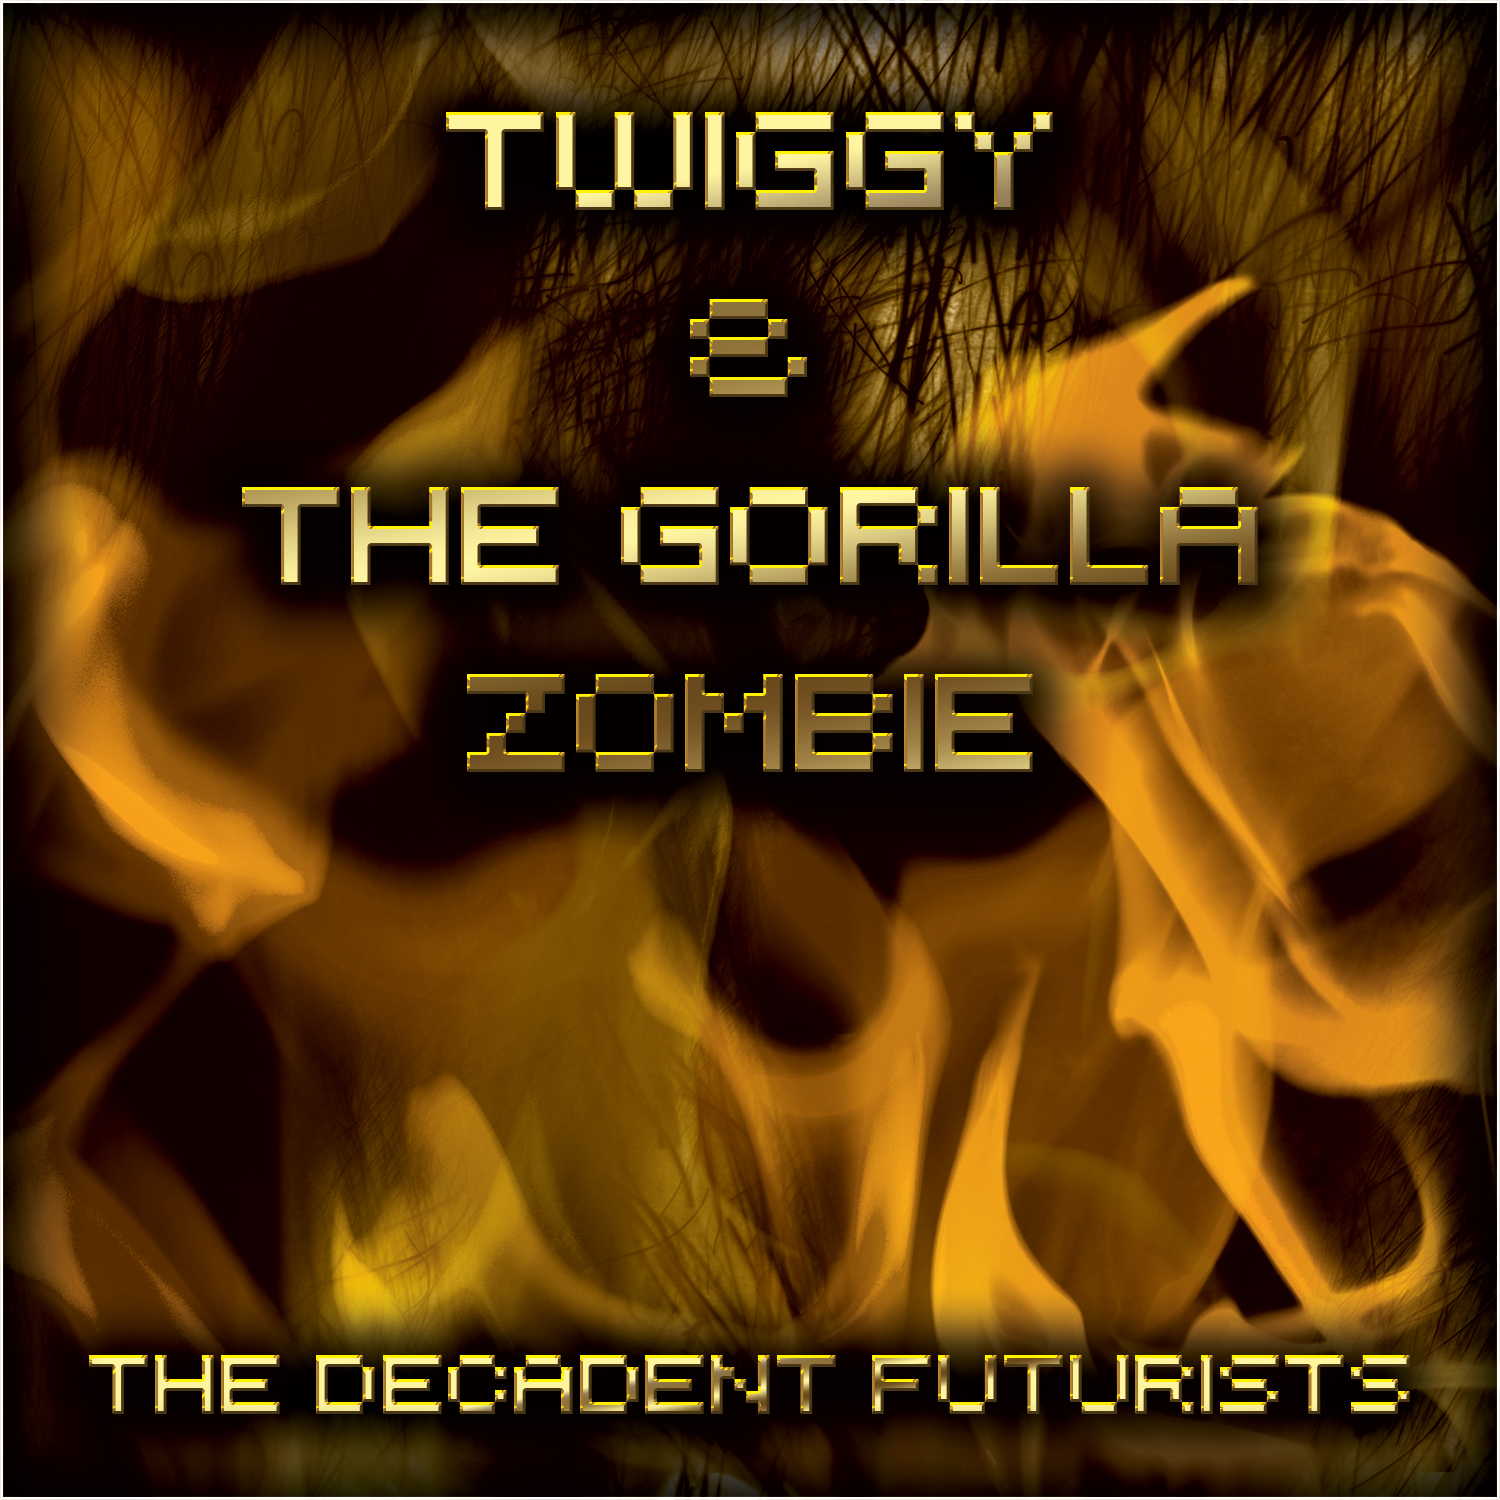 Twiggy and the Gorilla Zombie